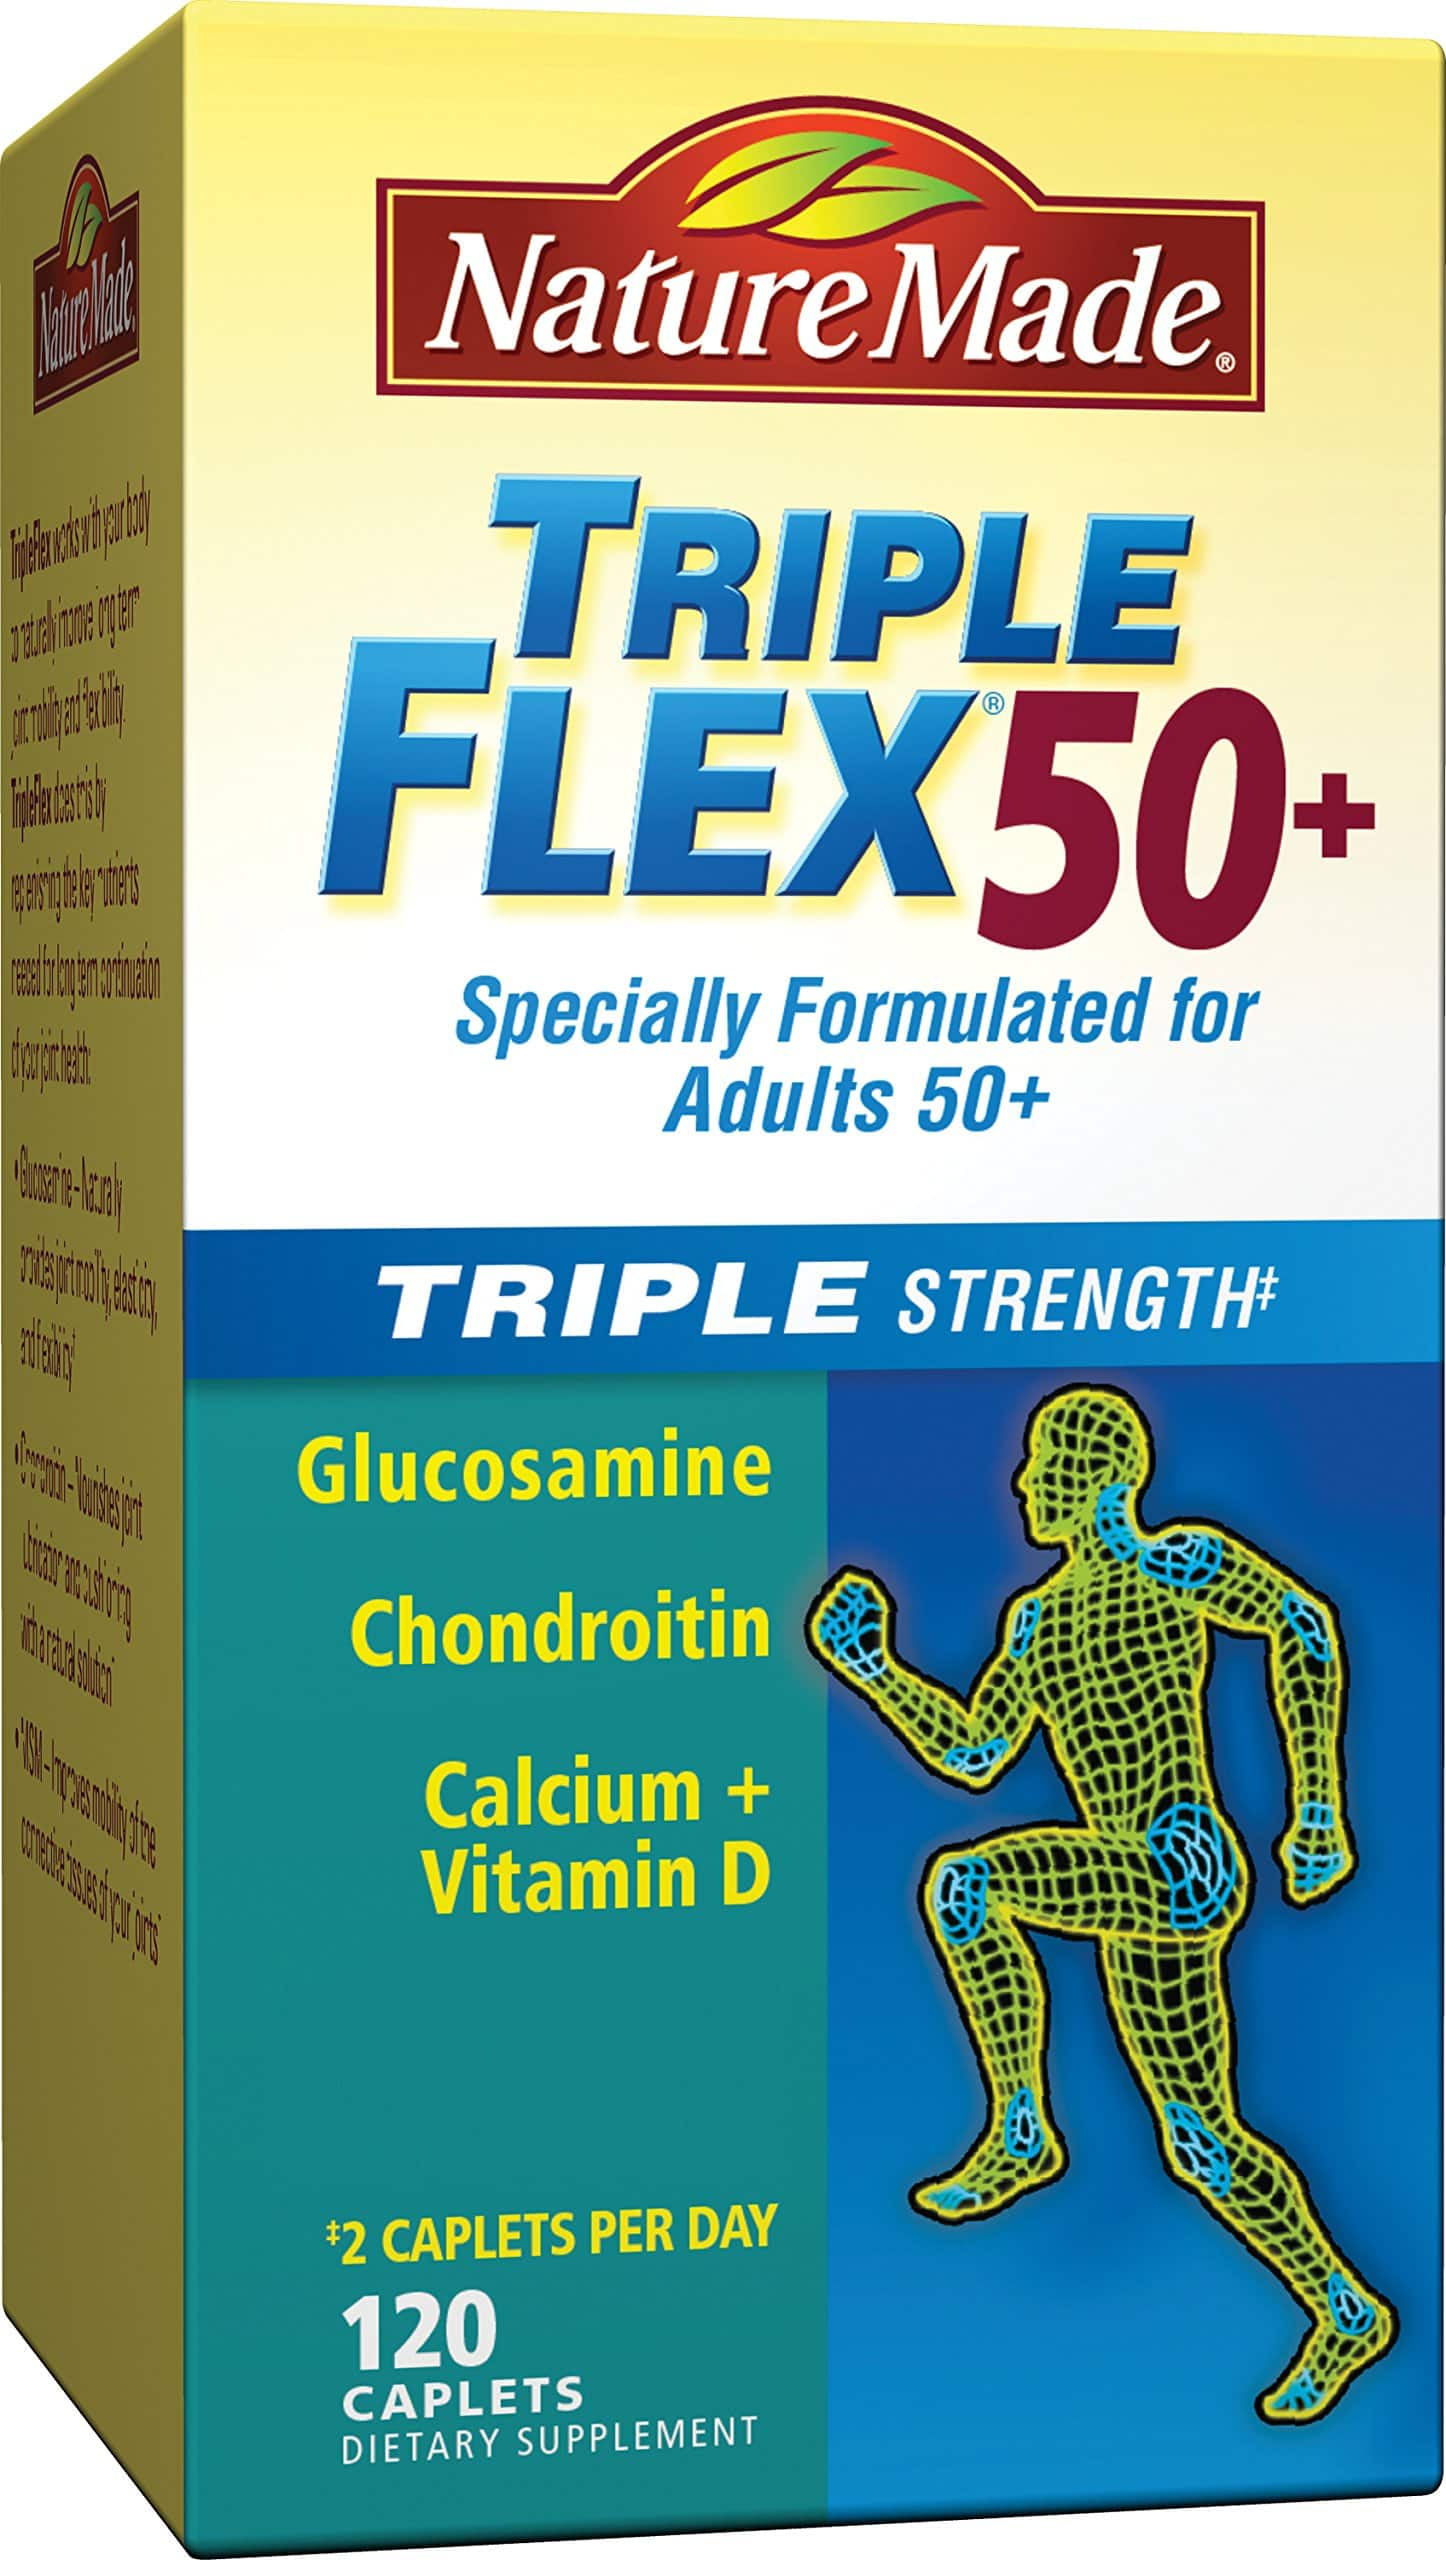 Nature Made Tripleflex Triple Strength with Vitamin D3, 120-Count $16.90 AC w/ S&S @ Amazon